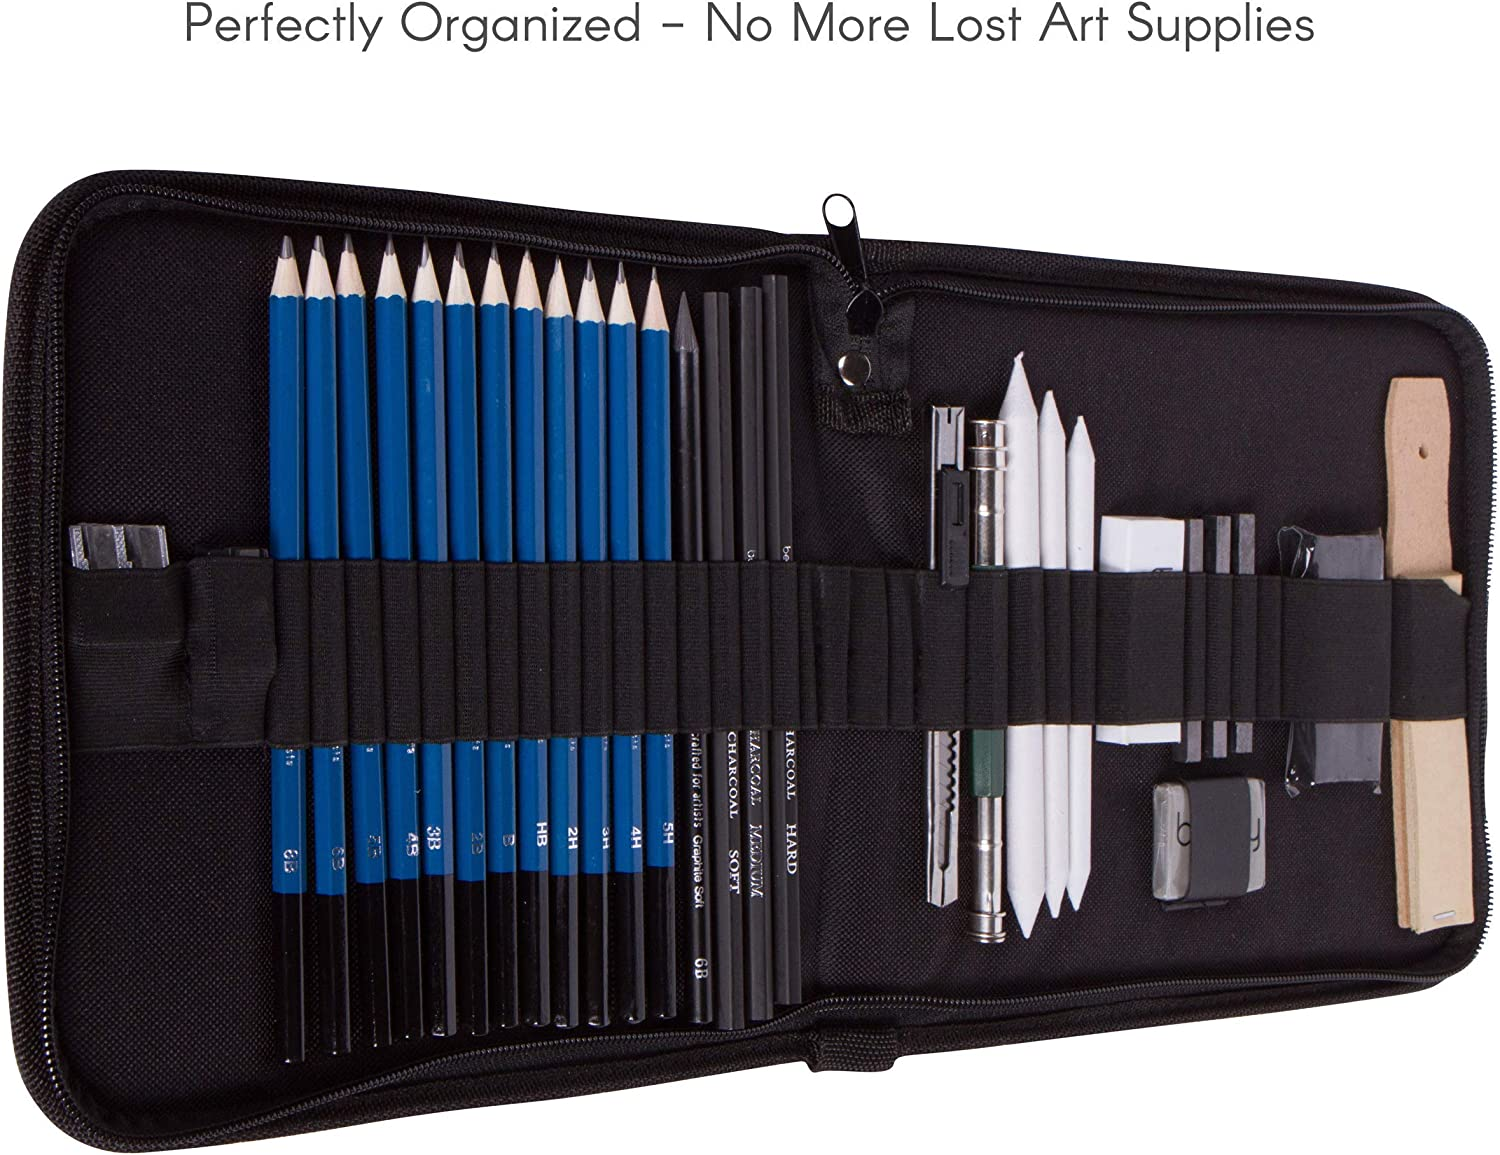 Bellofy Professional Drawing Kit Artist Drawing Supplies Kit | 33-piece Sketch Kit, Erasers, Kit Bag, Free Sketchpad | Perfect Graphite Drawing Pencil Set for Sketching | Art Pencils For Shading: Arts, Crafts & Sewing